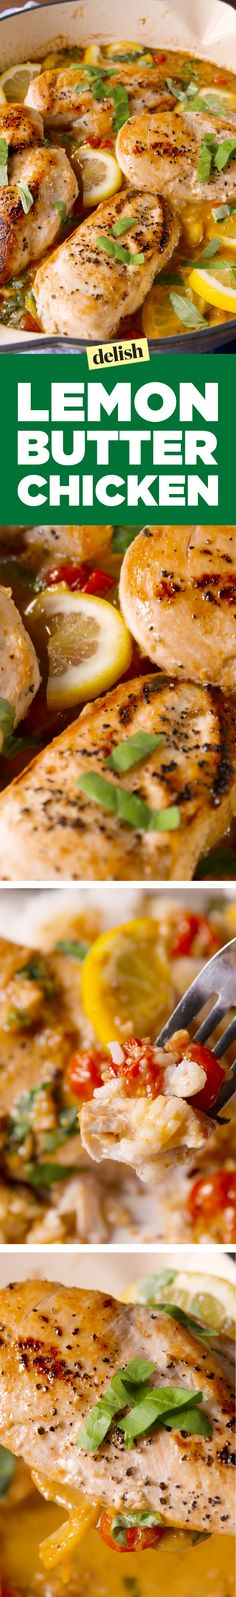 Lemon Butter Chicken is the chicken dinner you've always wanted. Get the recipe on Delish.com.